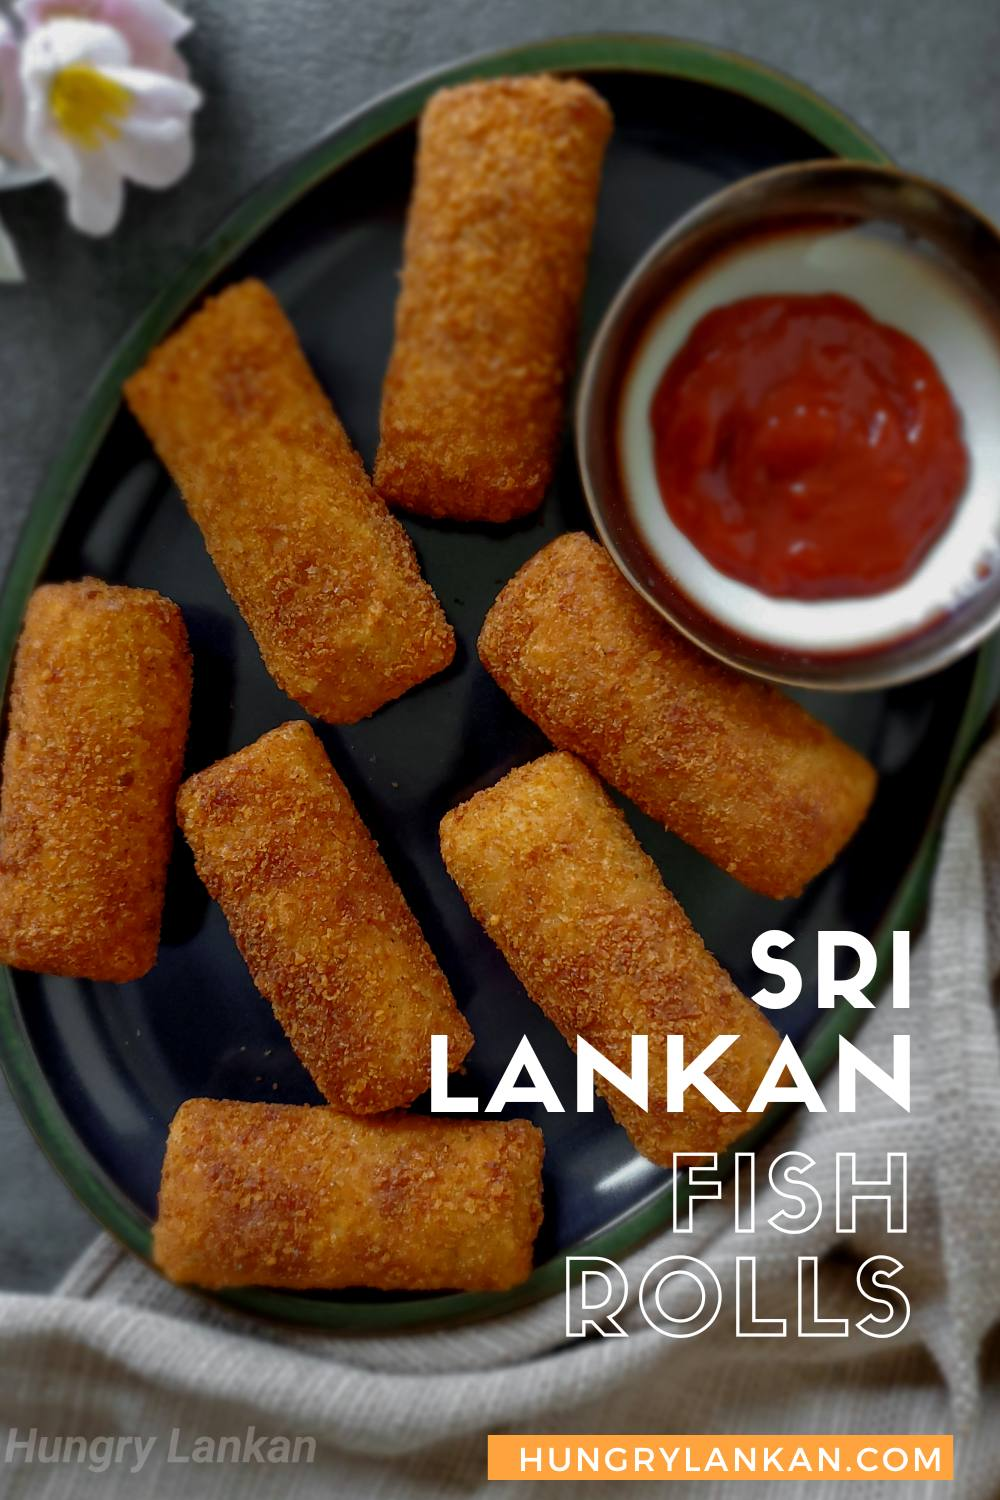 Sri Lankan popular snack made with a spicy vegetable and tuna filling covered with a thin pancake, breaded and deep-fried until crispy and golden